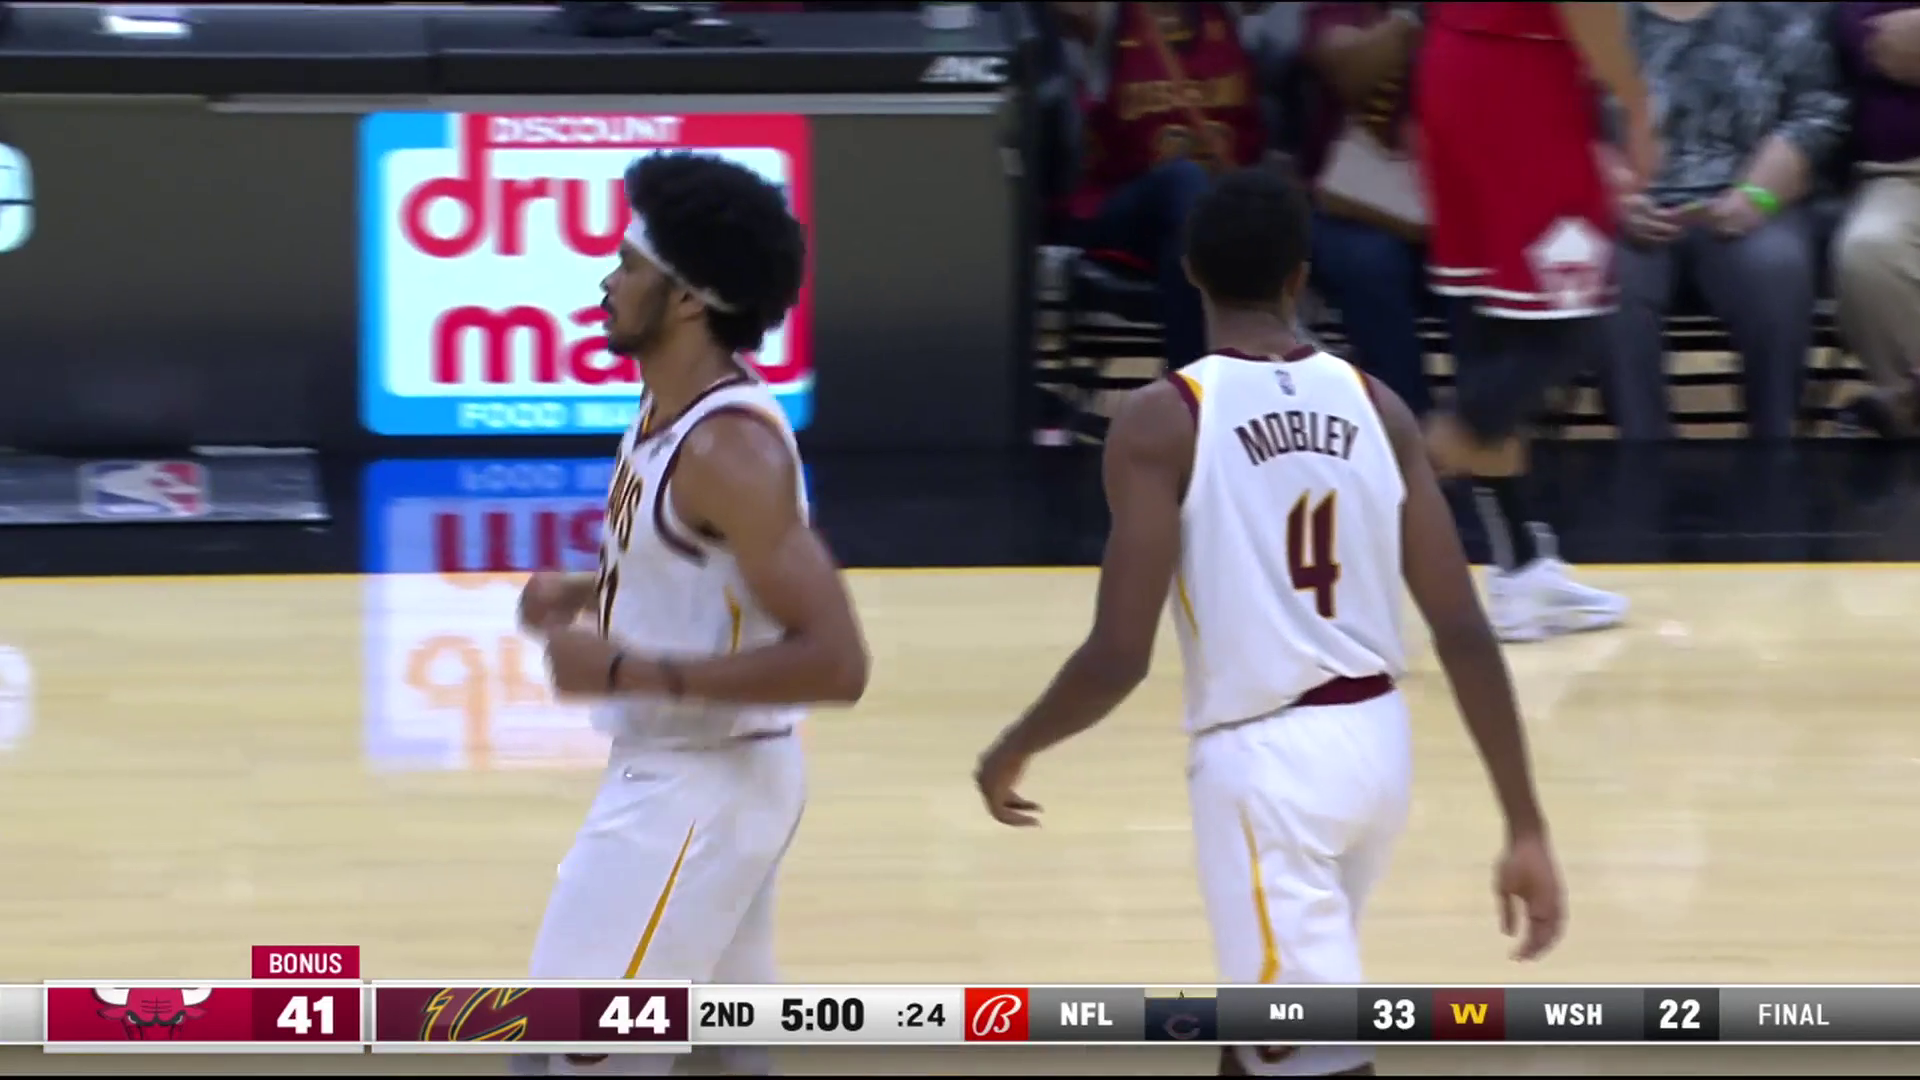 Mobley Shows Off Handles, Passing Skills on Assist